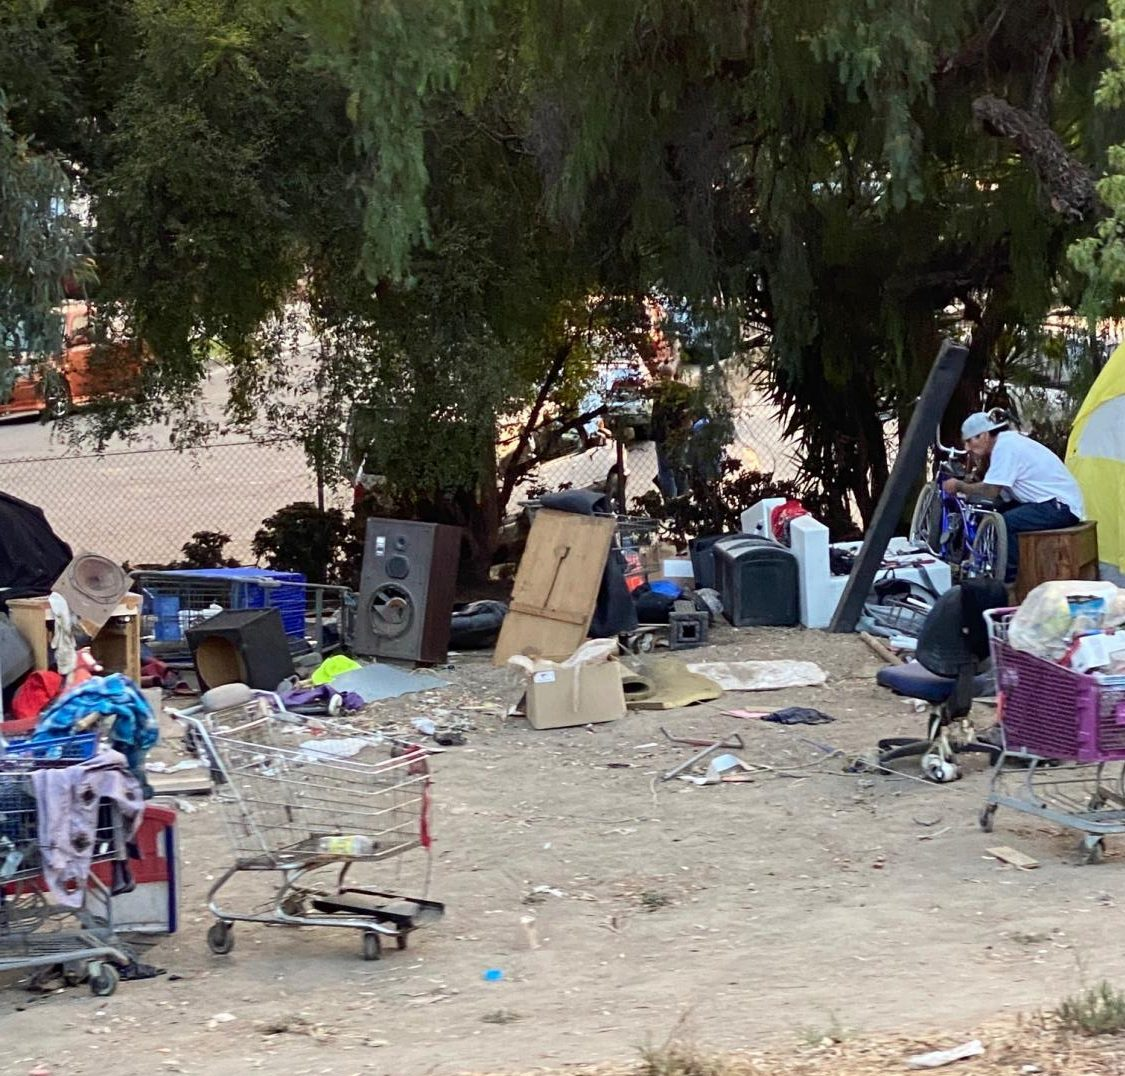 Young people camp on the sides of freeways as a place to call home. Photo credit: Jacqueline Cochran